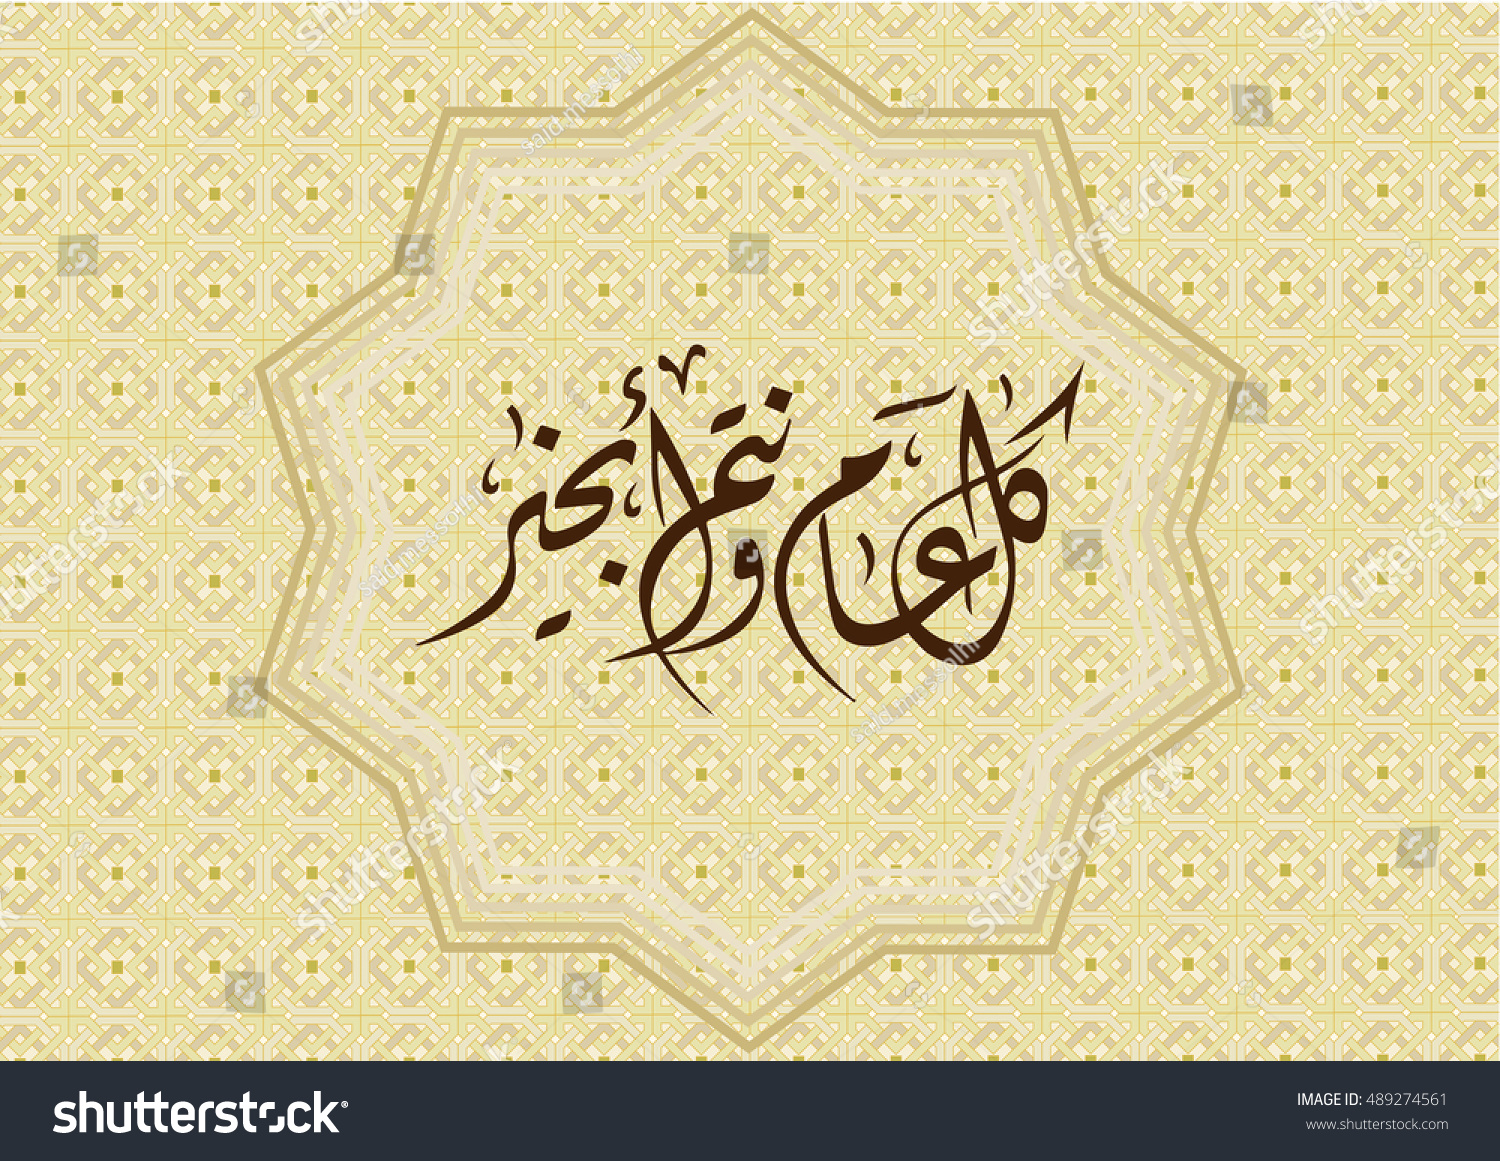 Vector arabic calligraphy eid greeting card stock vector 489274561 vector arabic calligraphy eid greeting card with arabesques pattern background translation may you be well kristyandbryce Image collections